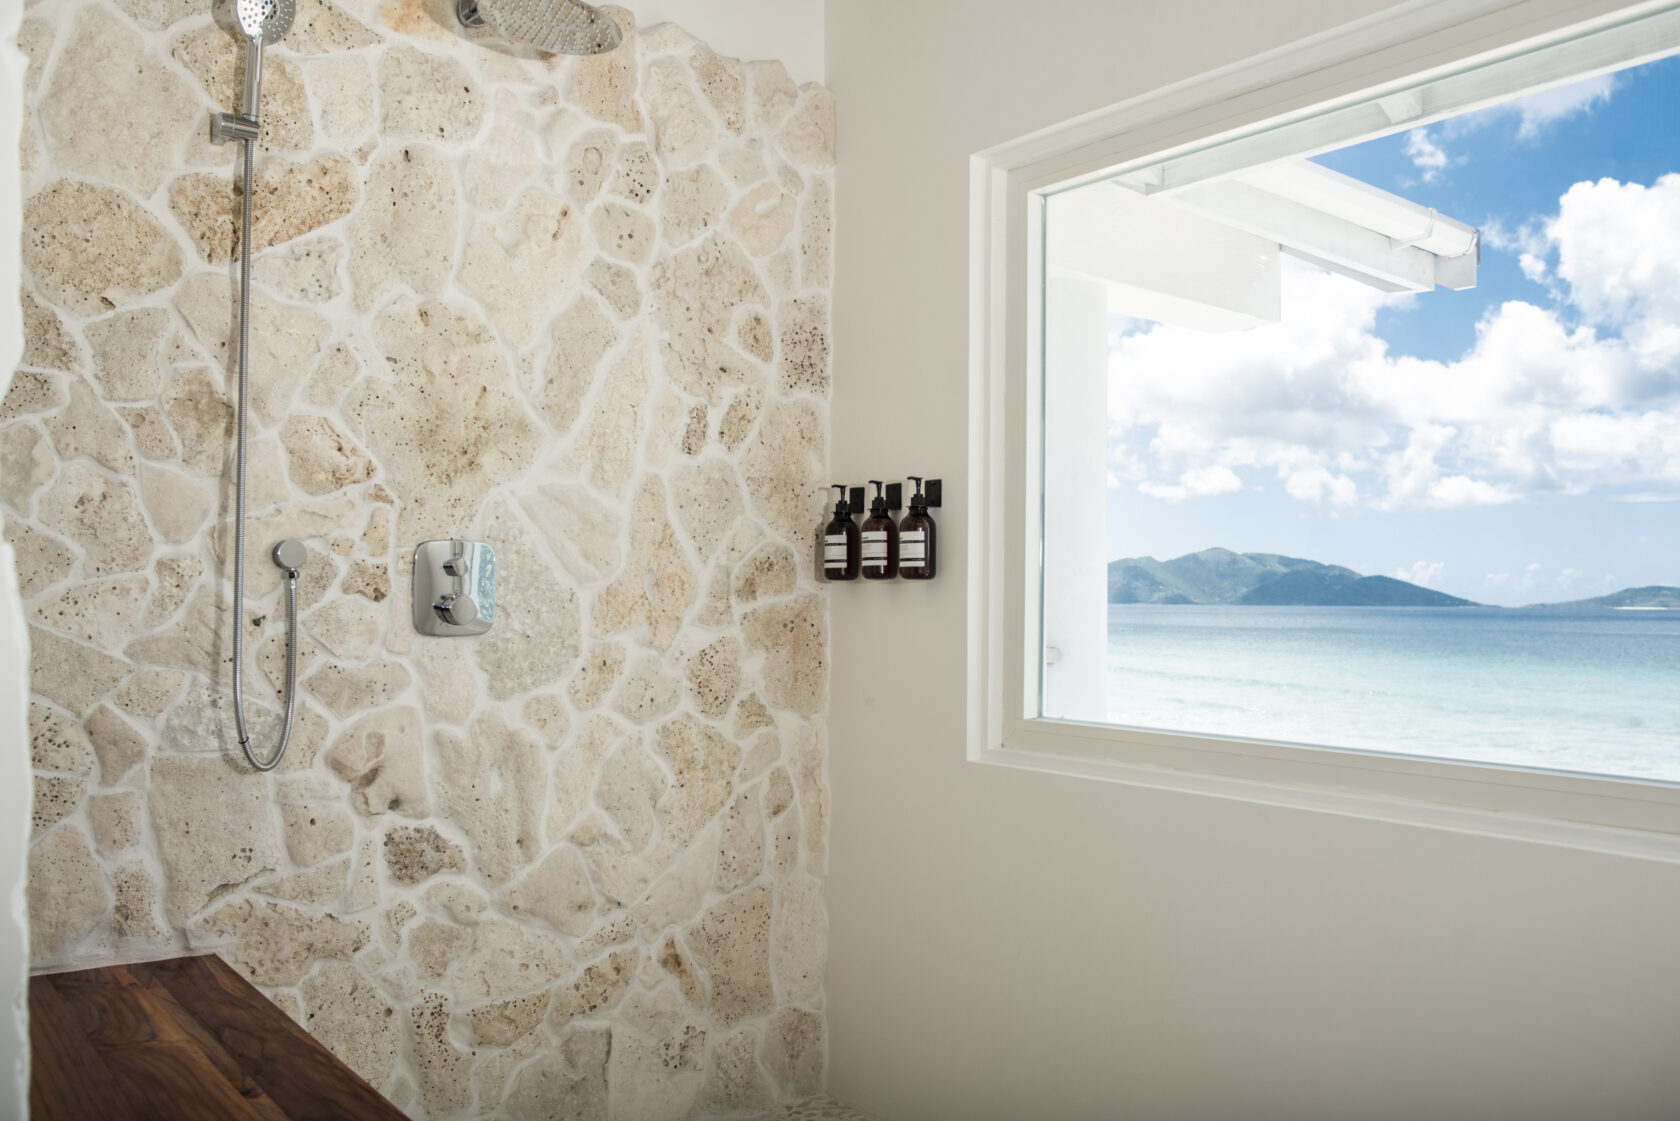 Shower with an ocean view